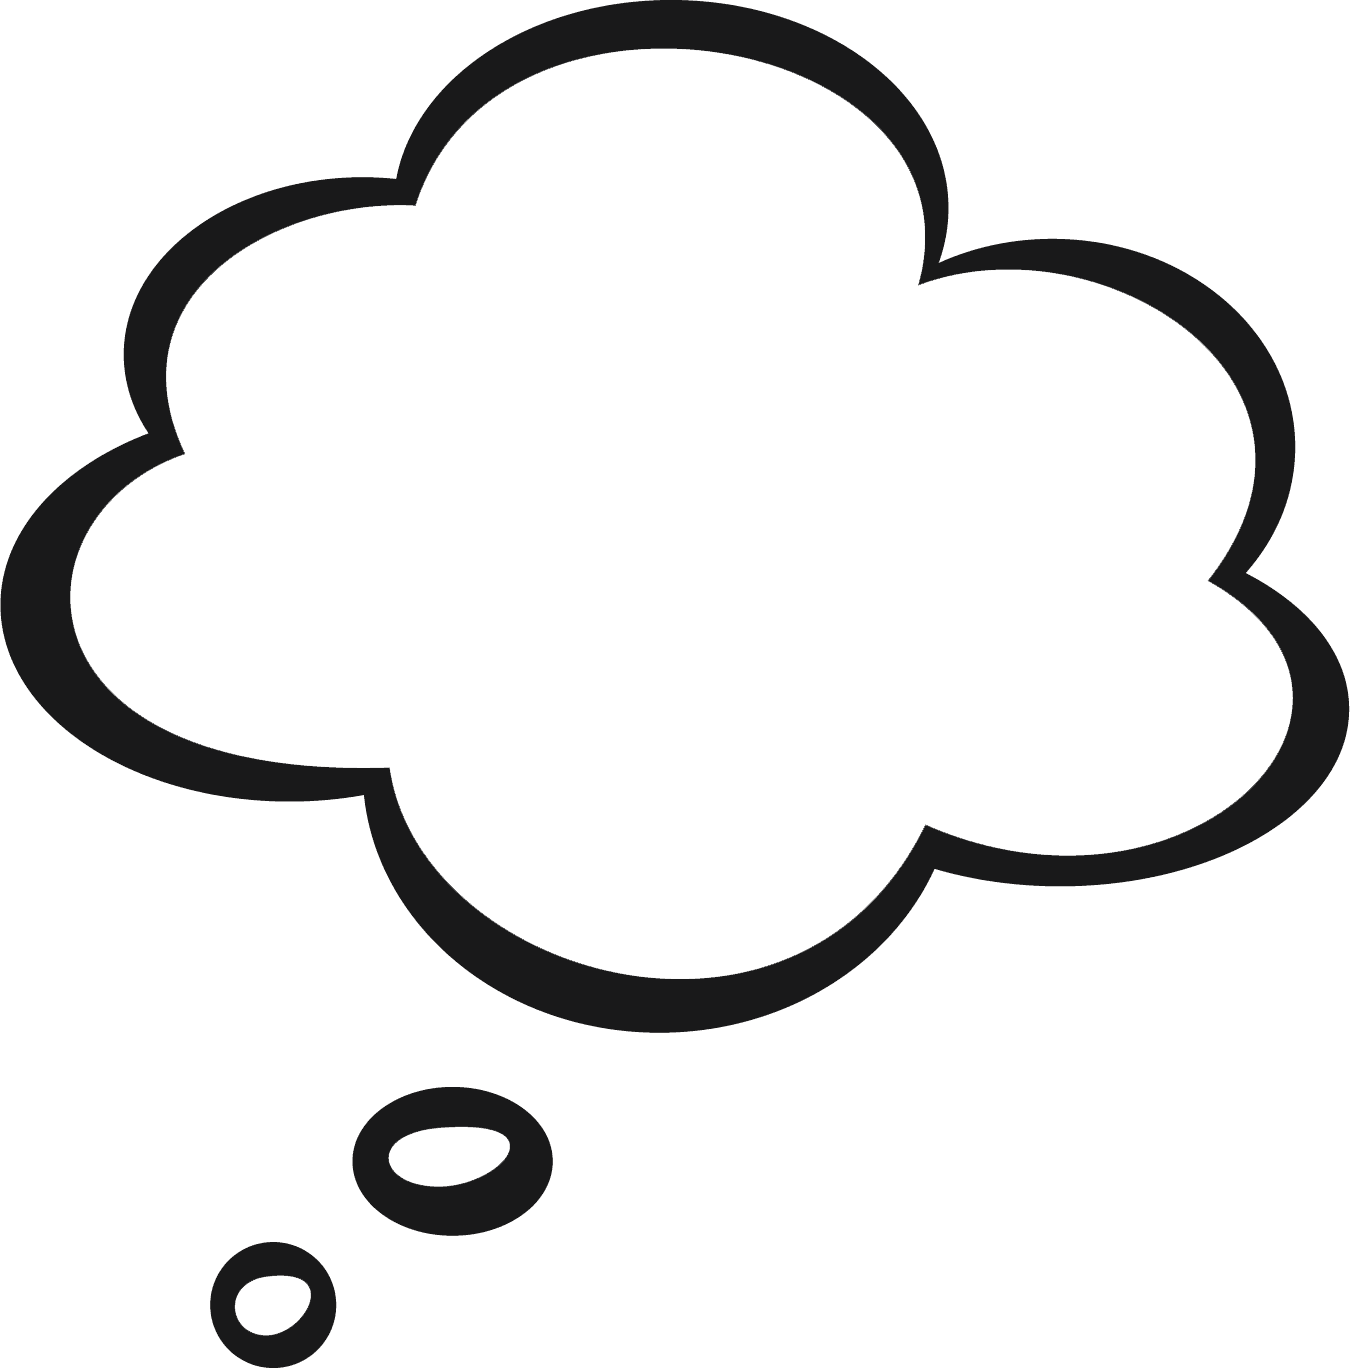 Free Clip art of Cloud Clipart Black and White #1642 Best Student.